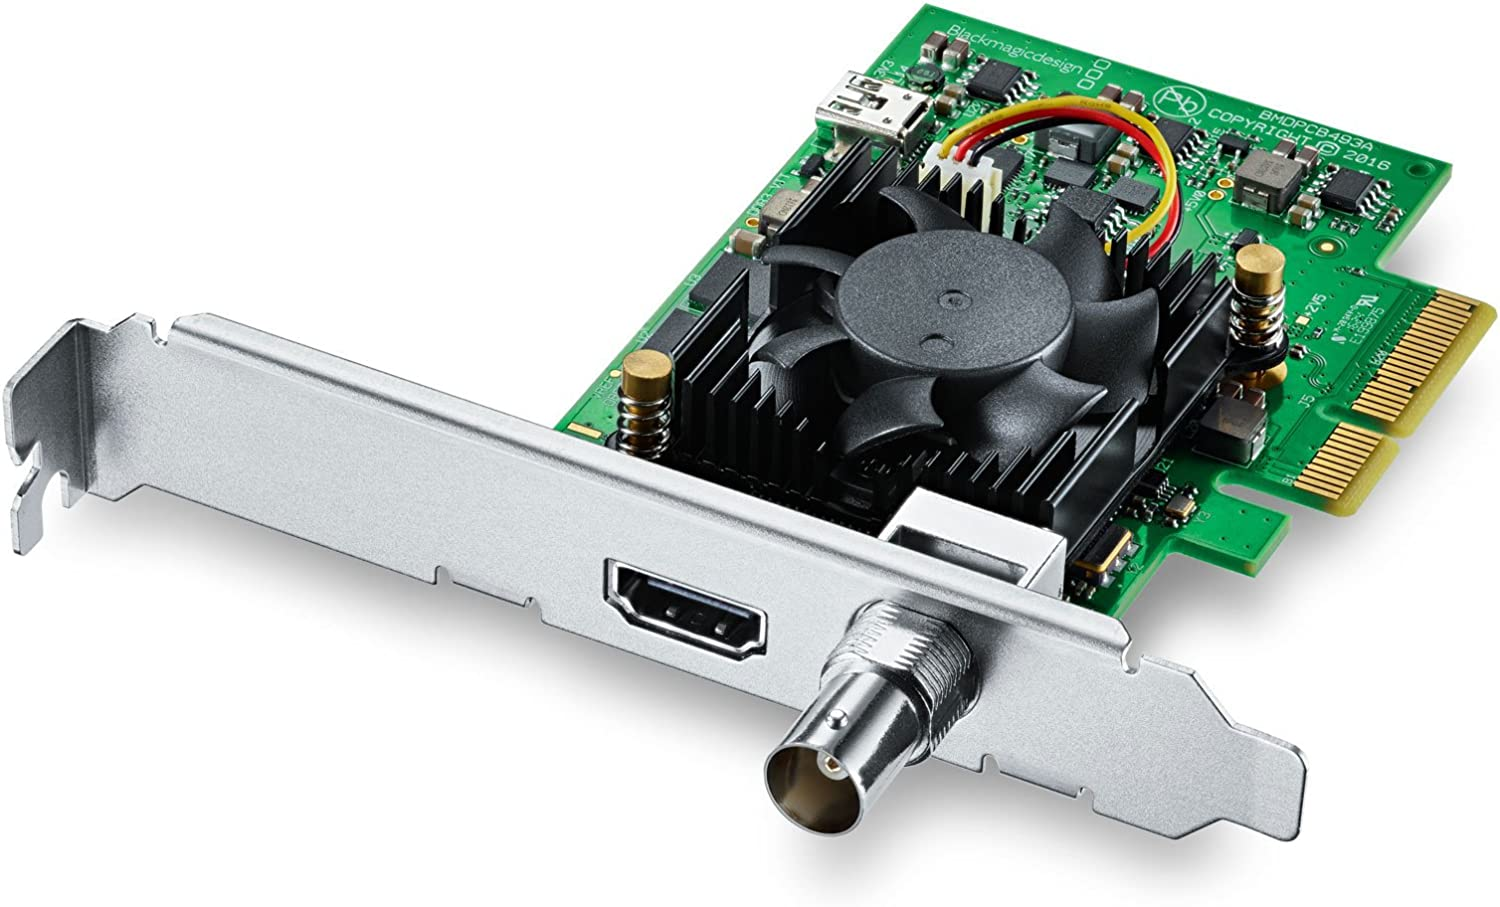 Blackmagic Design Decklink Mini Recorder 4k Pcie Capture Card Amazon Co Uk Computers Accessories